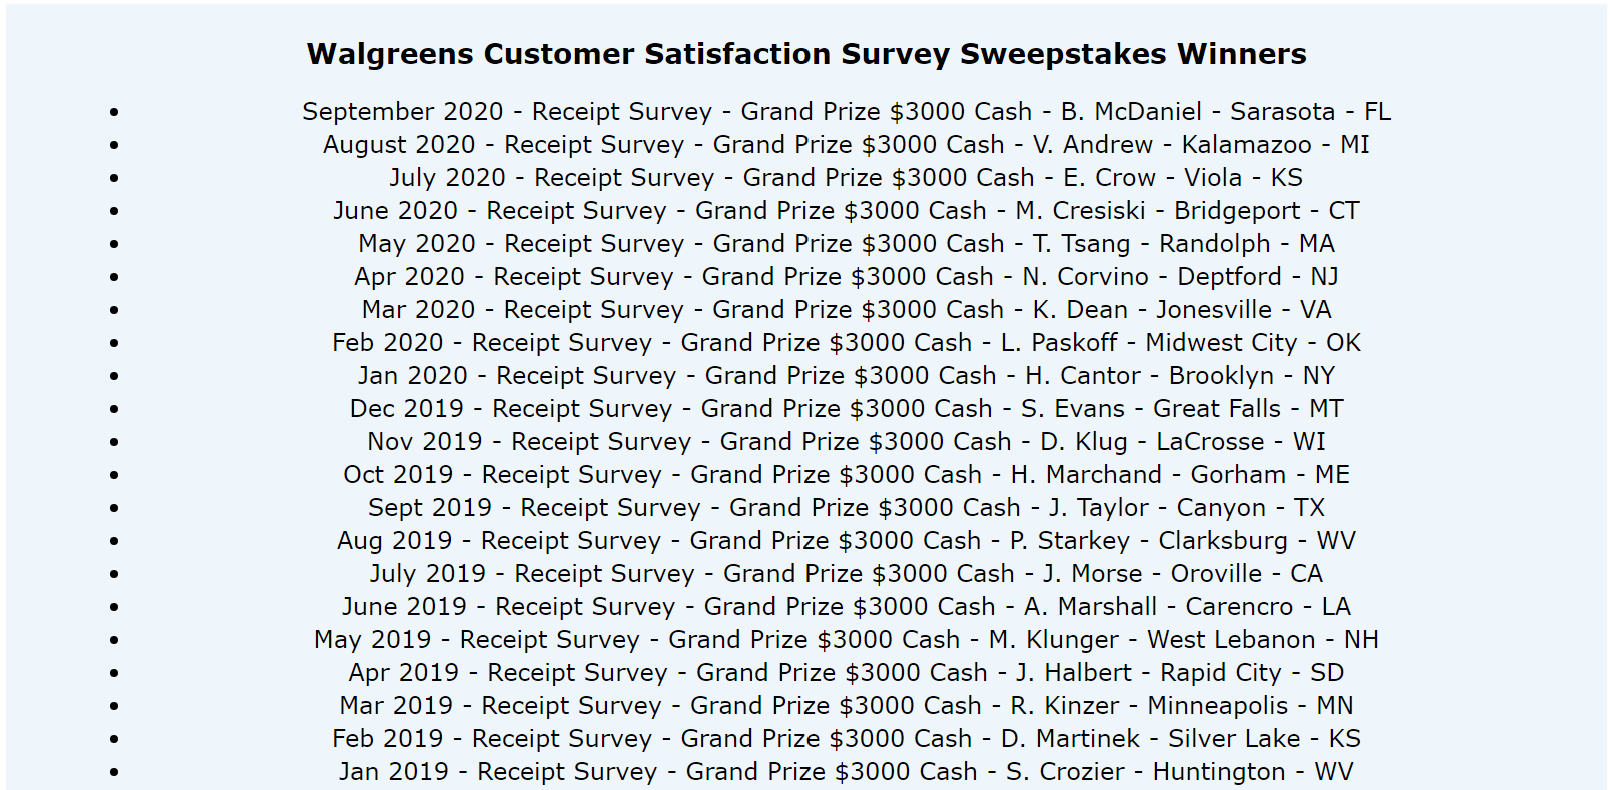 walgreenslistens monthly sweepstakes $3000 winners